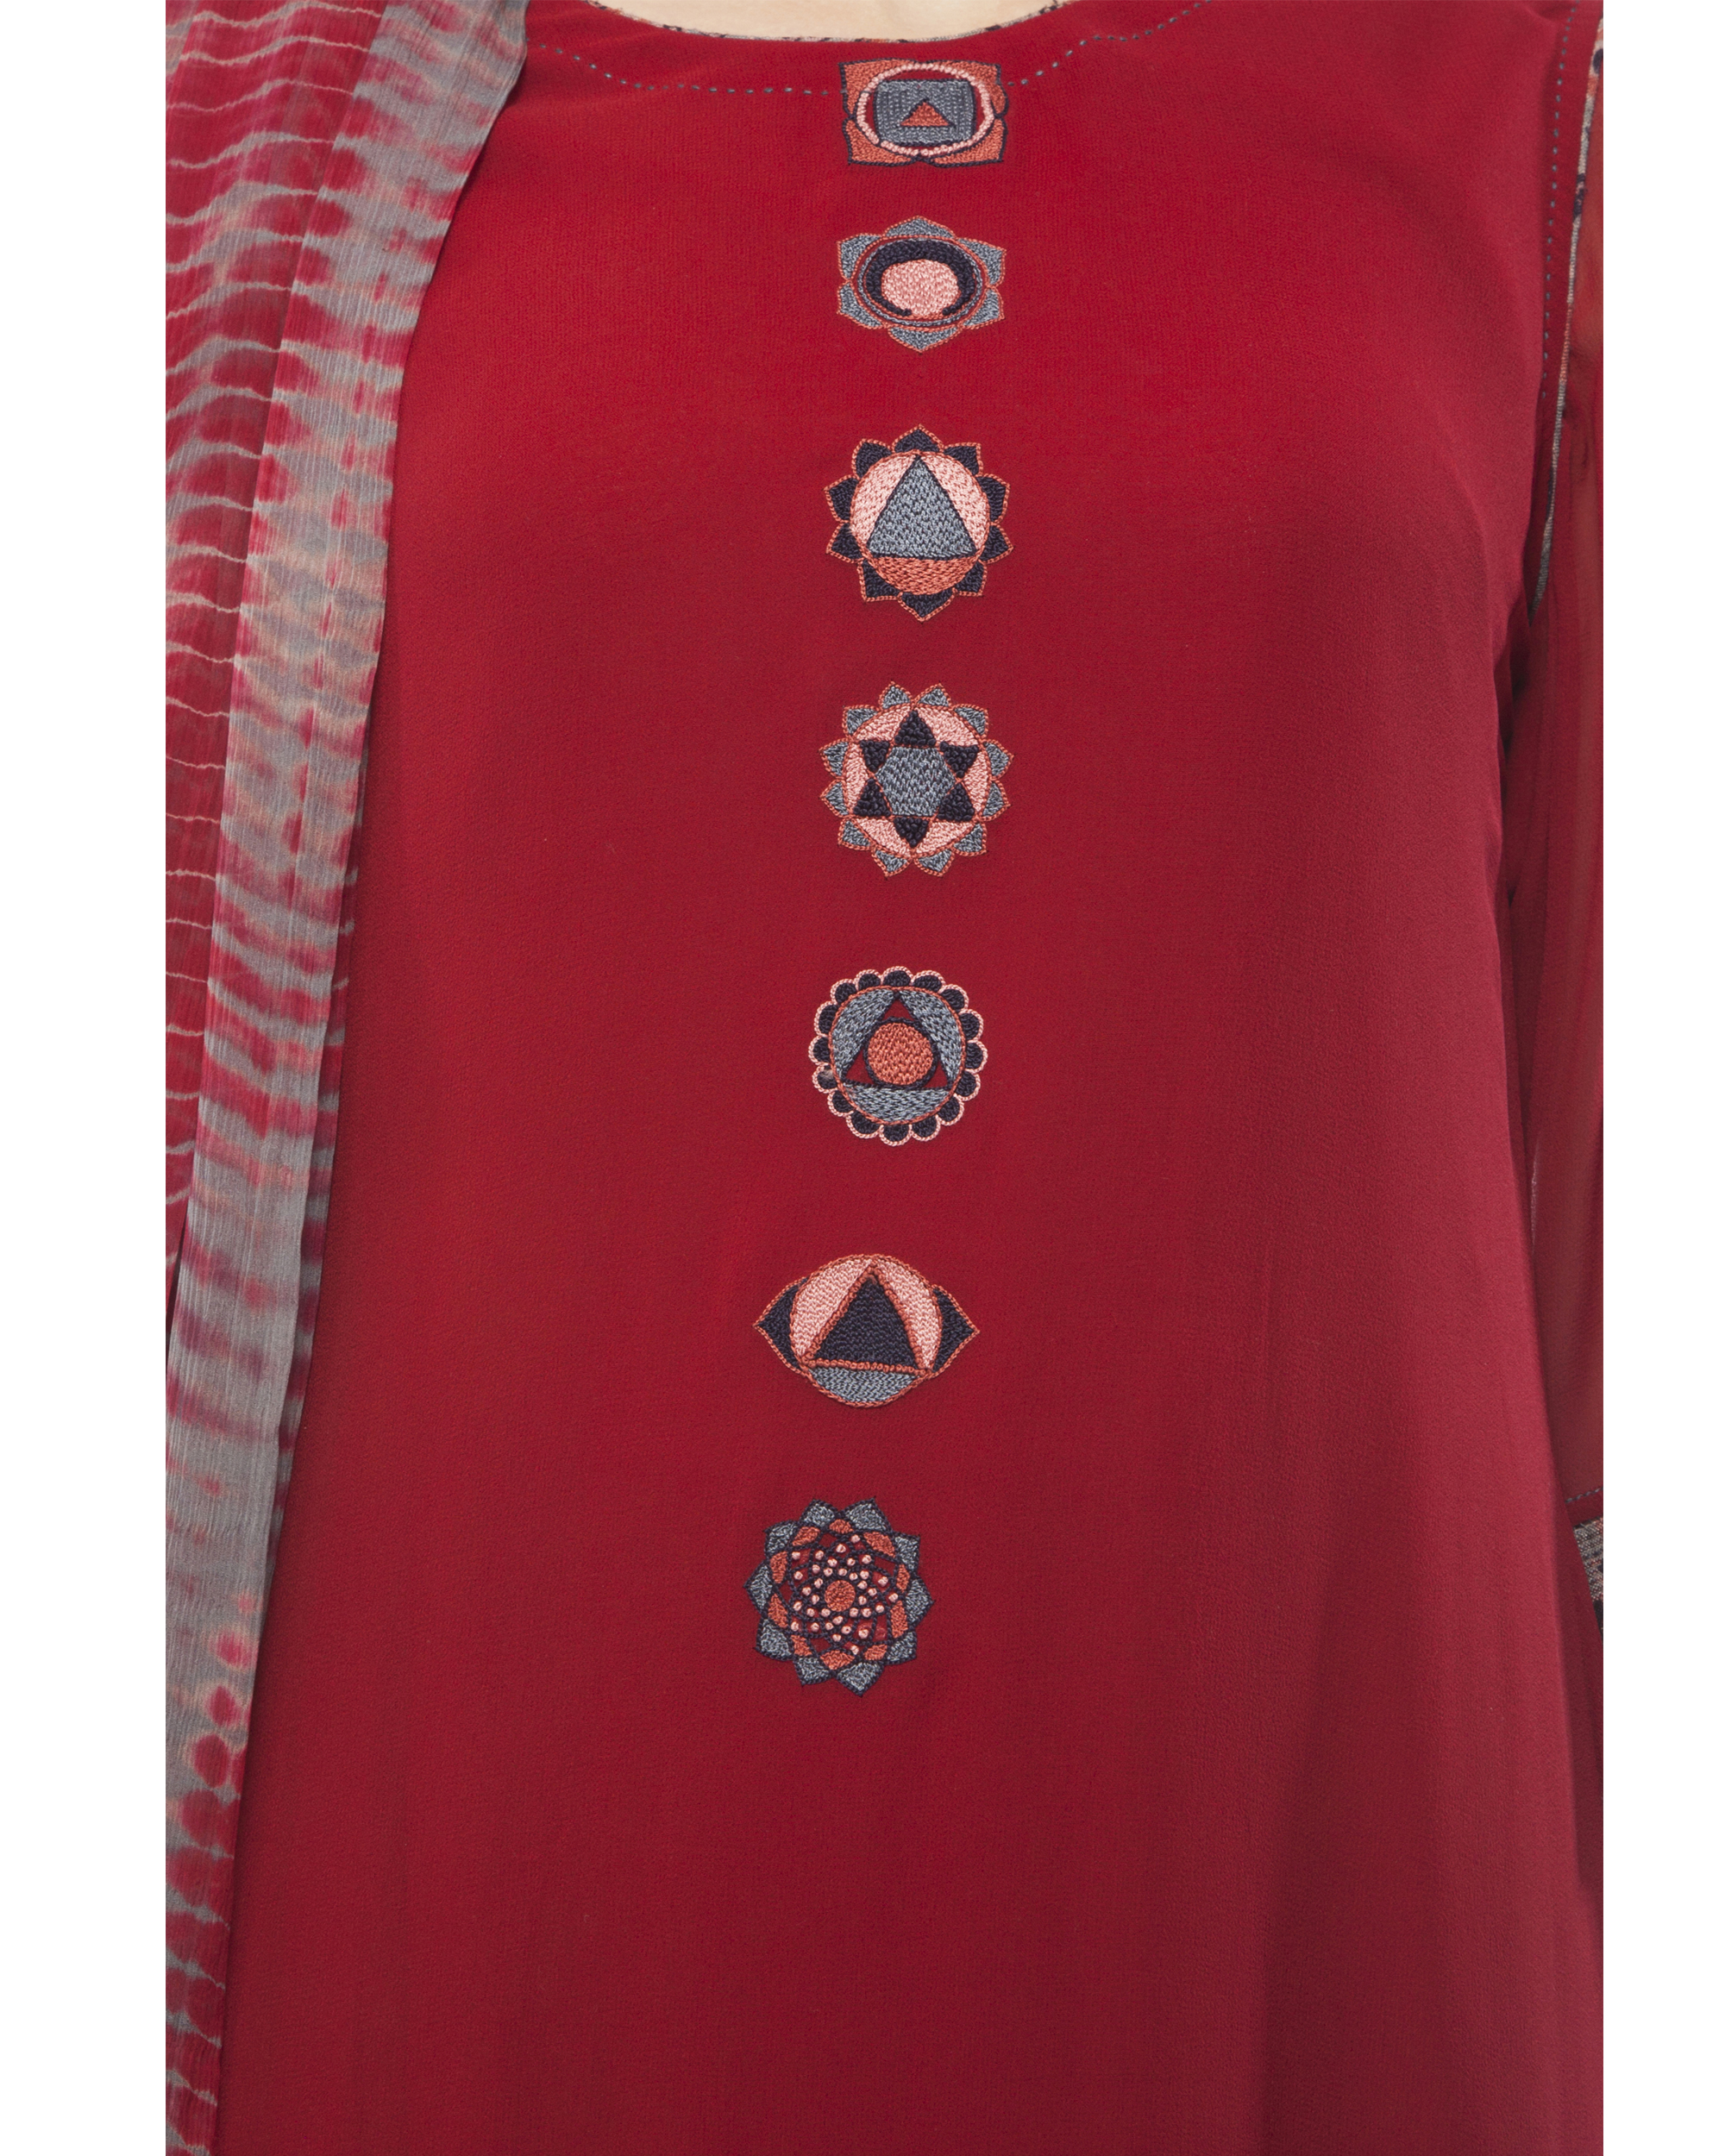 Ihram Kids For Sale Dubai: Round Neck Front Embroidered Kurta, Comes With A Palazzo